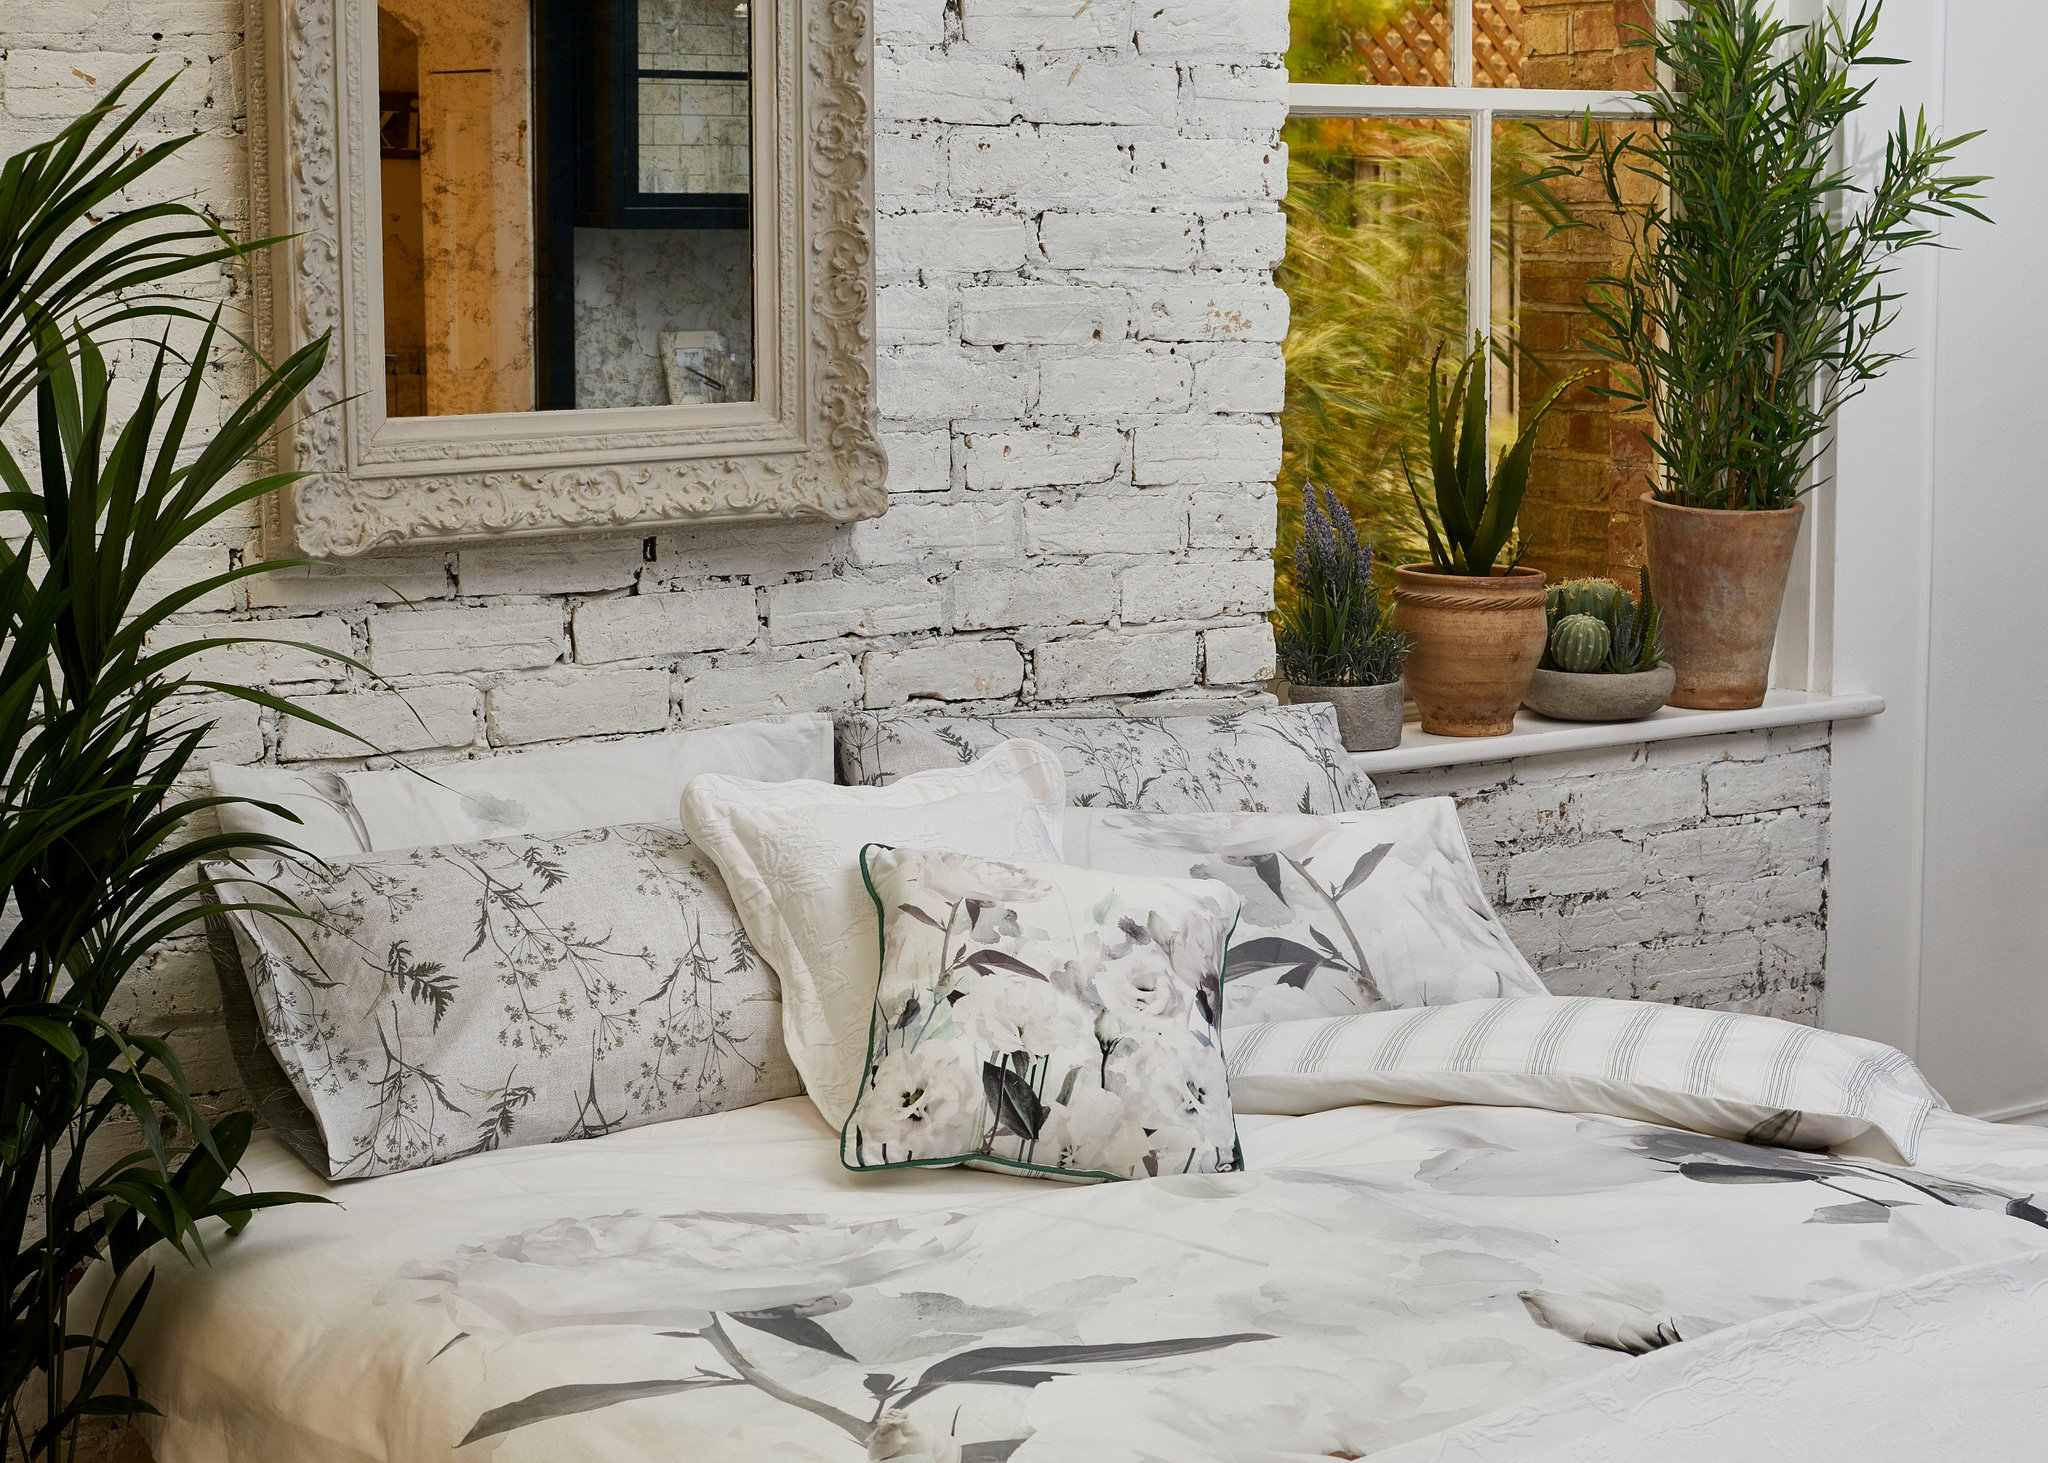 RT @Matalan: Up the style stakes in the bedroom with our fresh Botanicals trend > https://t.co/YFsFe9TO3s https://t.co/9o3GQLUs0L